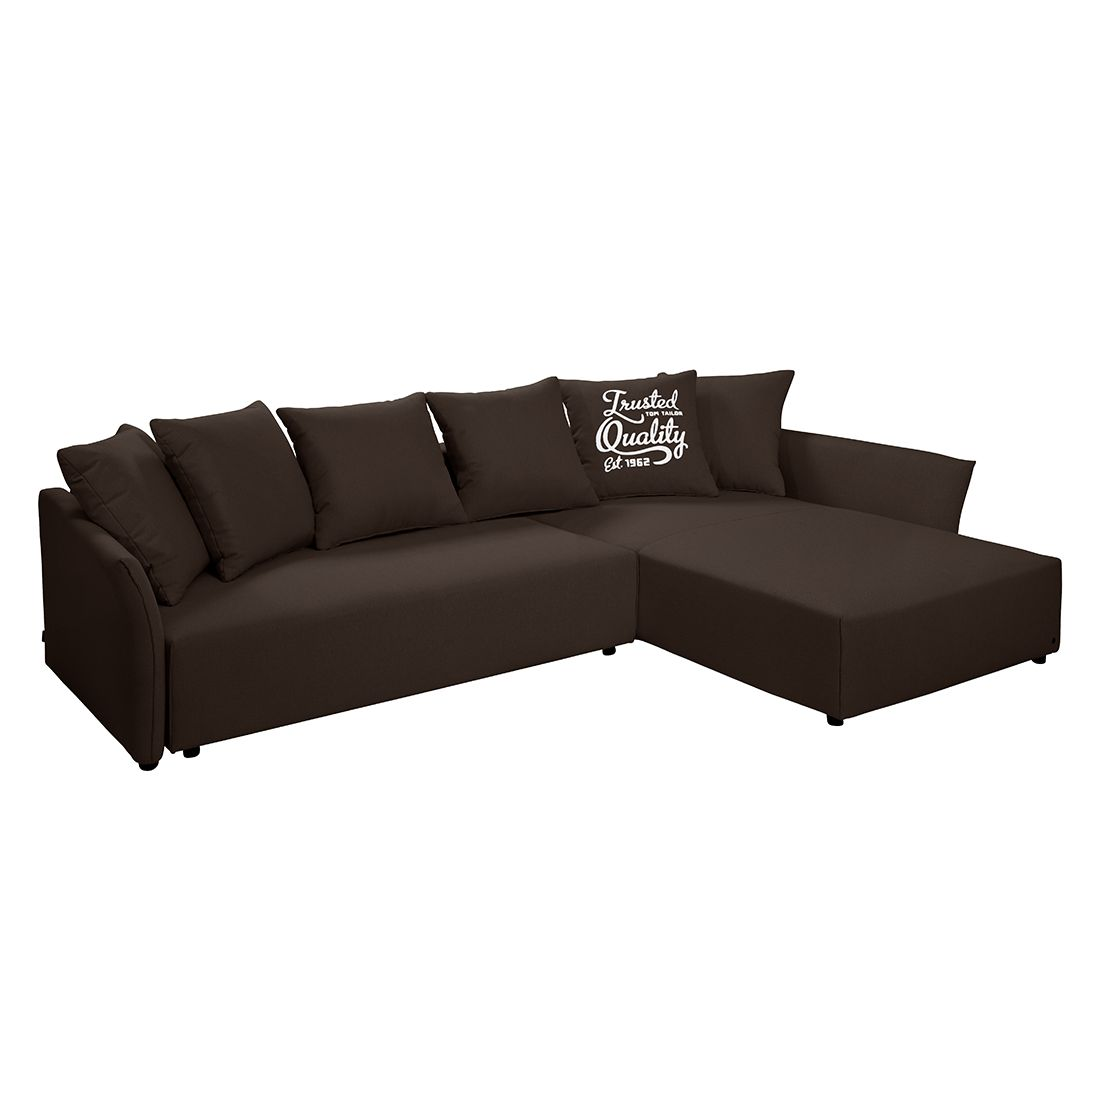 Ecksofa wings casual mit schlaffunktion webstoff for Ecksofa mit schlaffunktion klein